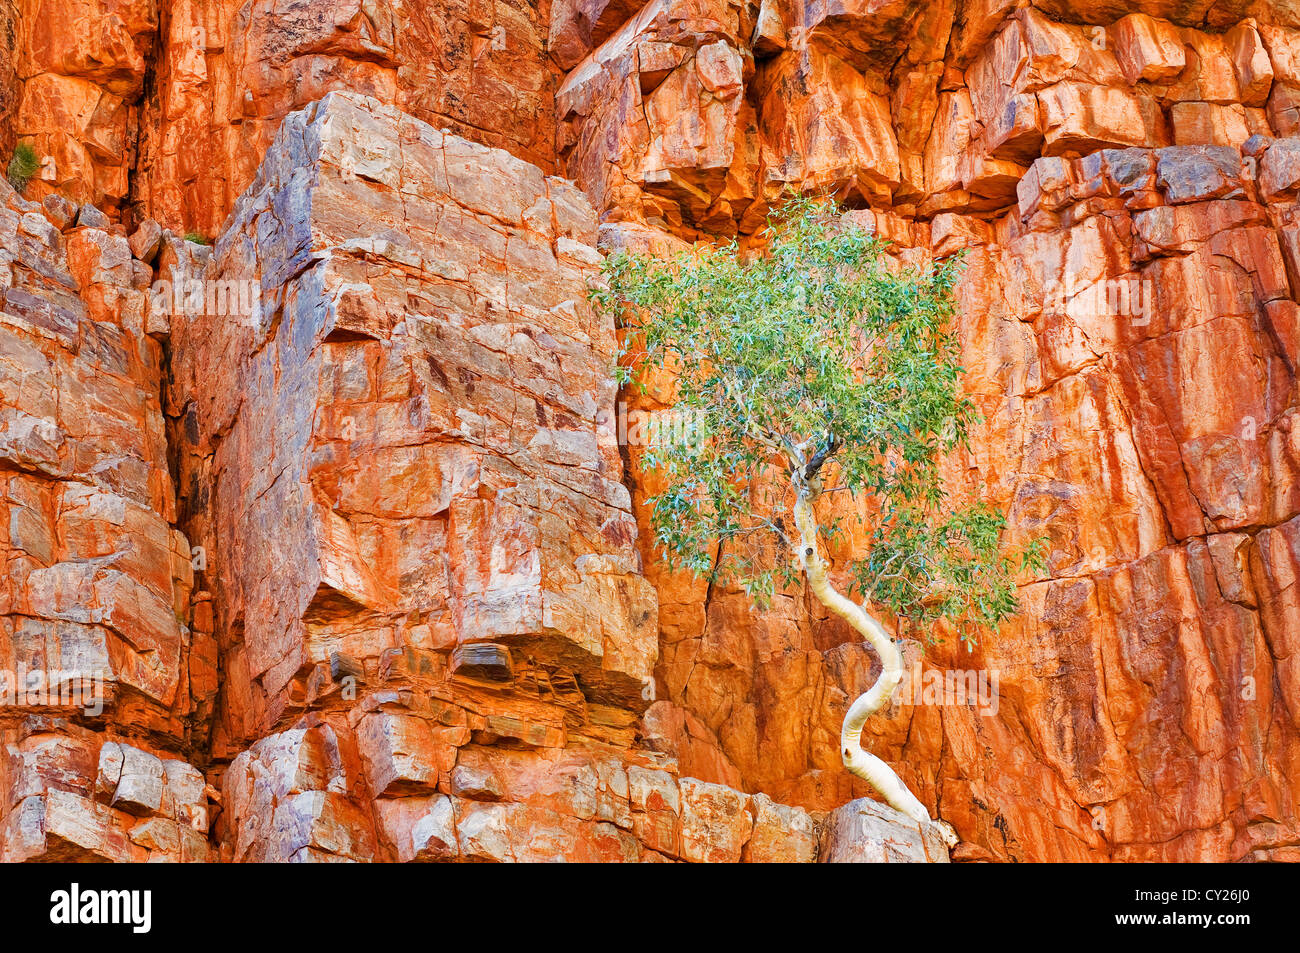 Lonely Ghost Gum in red rock wall. - Stock Image